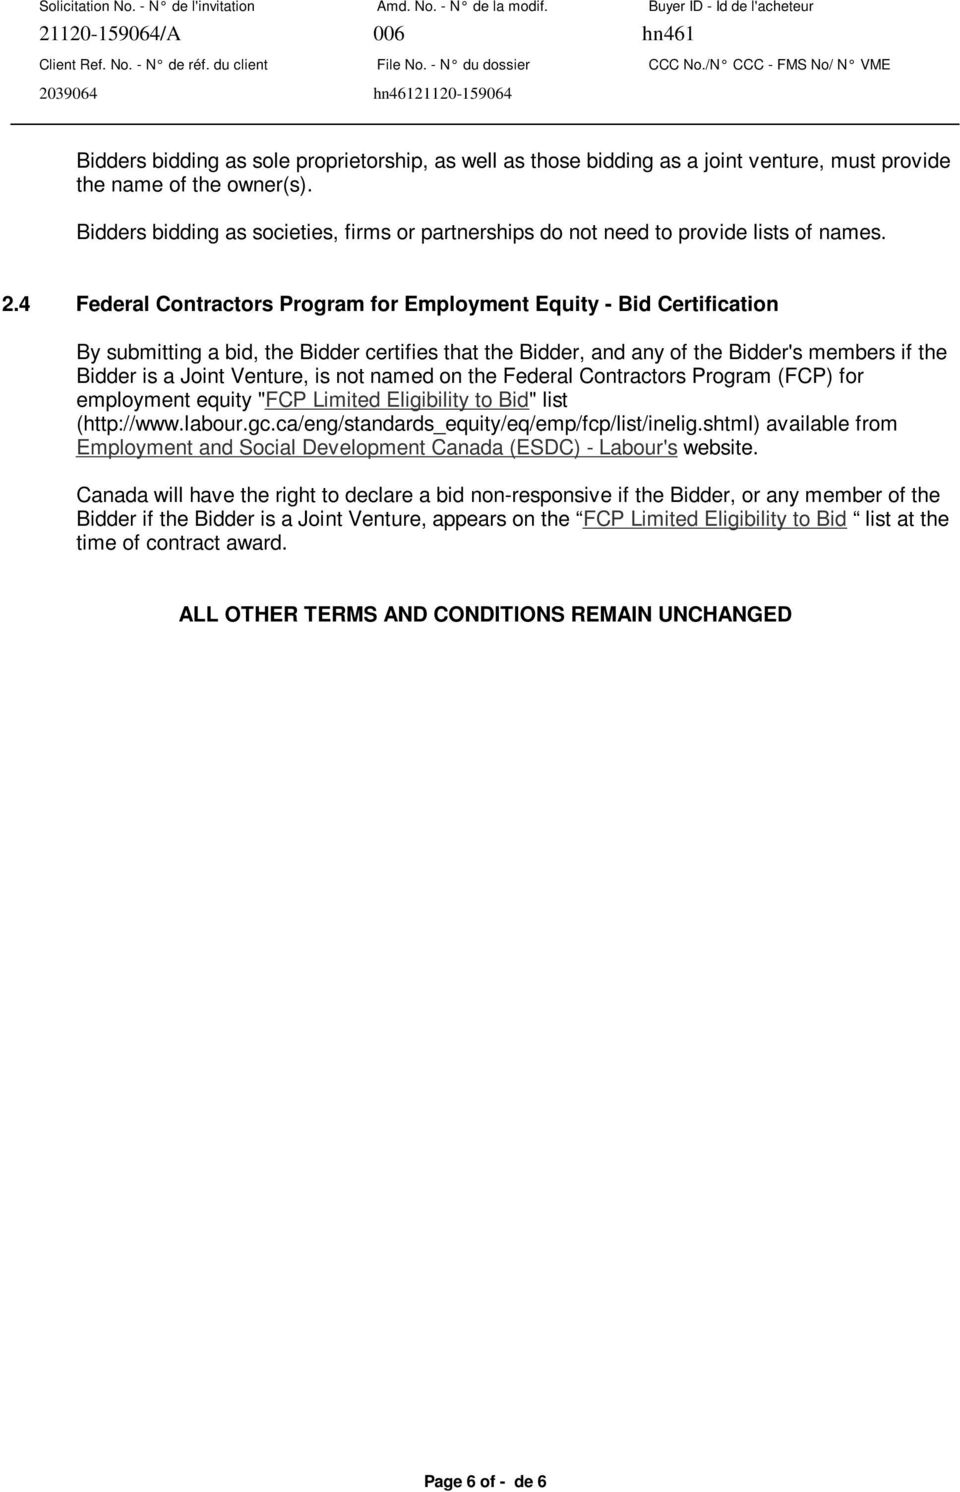 4 Federal Contractors Program for Employment Equity - Bid Certification By submitting a bid, the Bidder certifies that the Bidder, and any of the Bidder's members if the Bidder is a Joint Venture, is